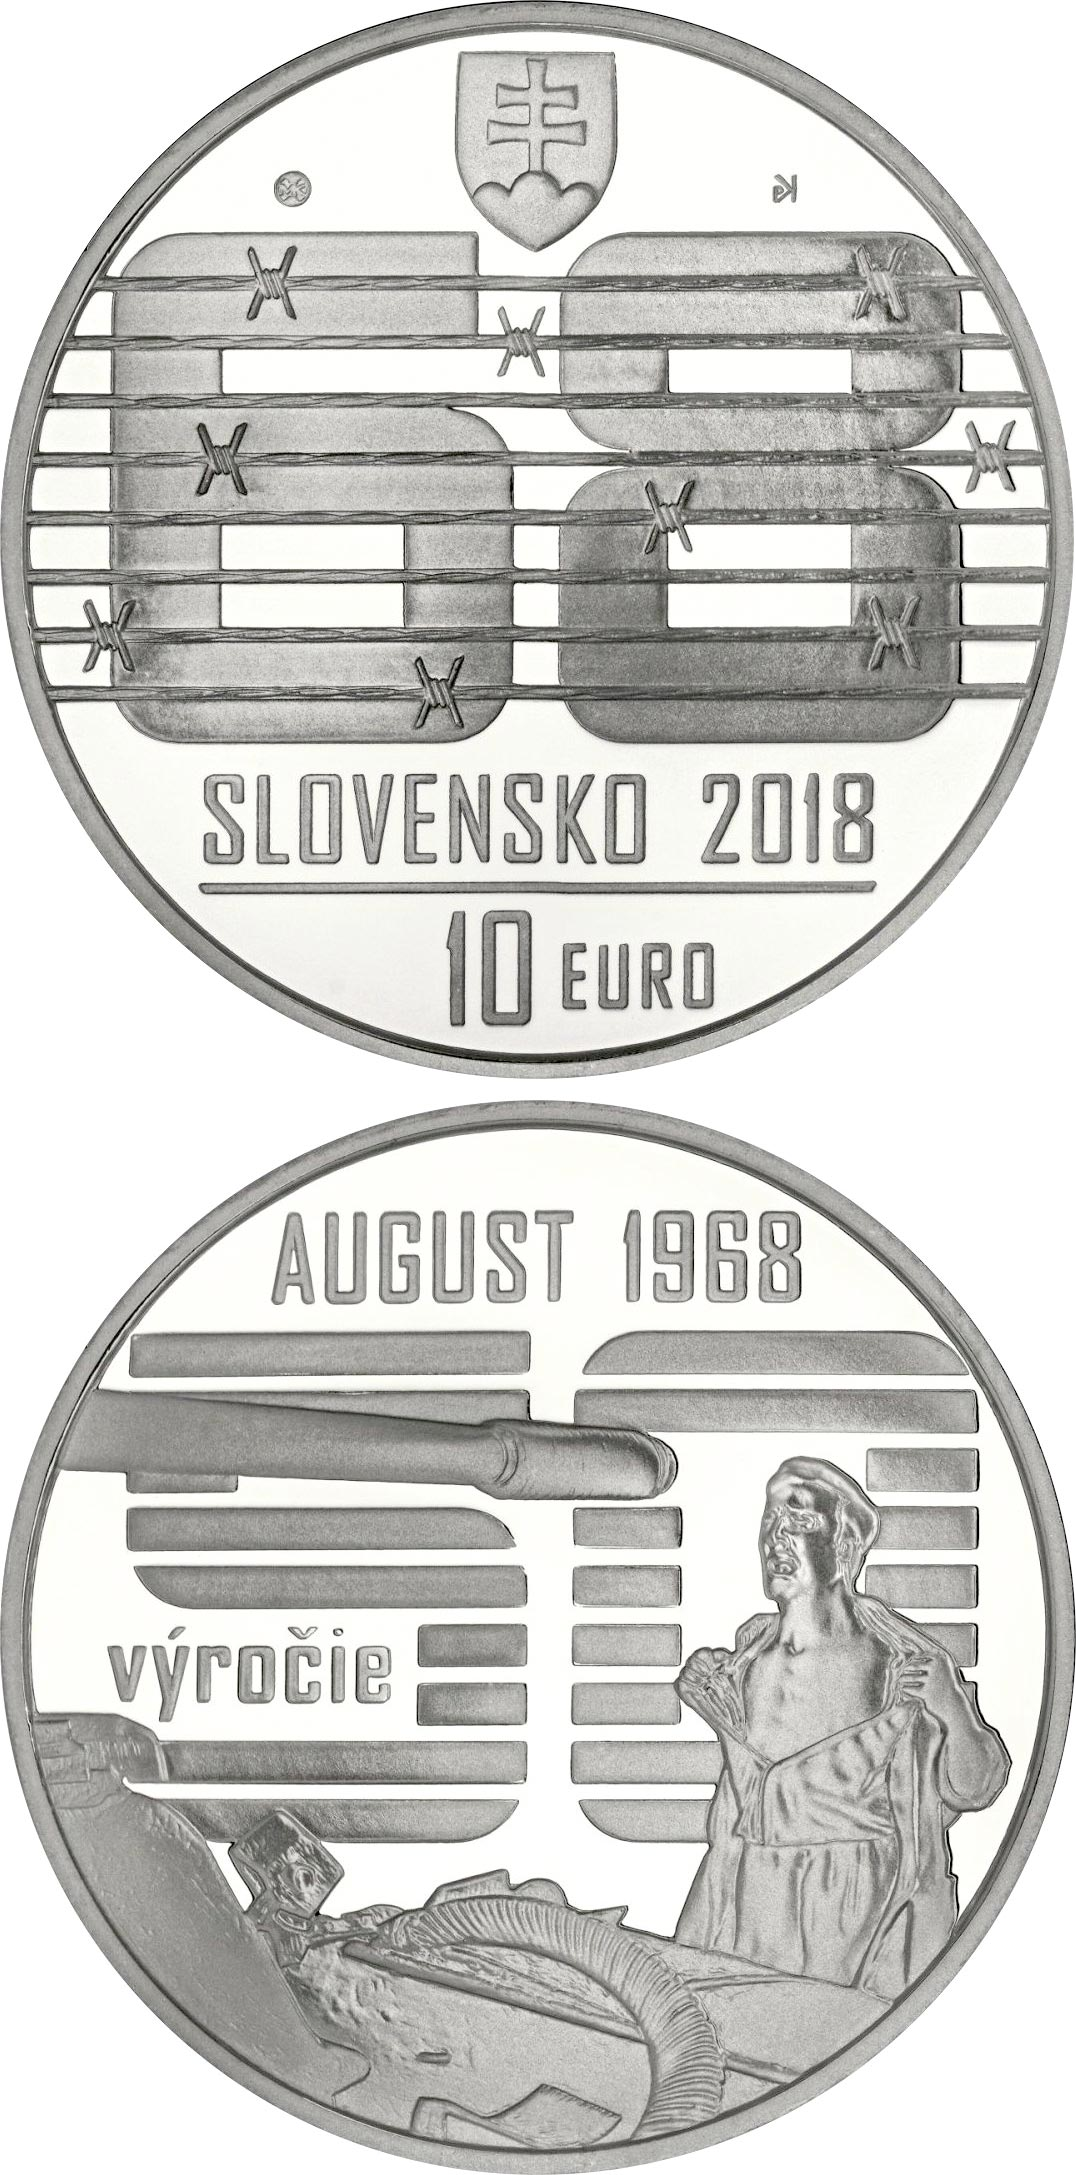 Image of Spontaneous, non-violent civic resistance to the Warsaw Pact invasion in August 1968 – 10 euro coin Slovakia 2018.  The Silver coin is of Proof, BU quality.